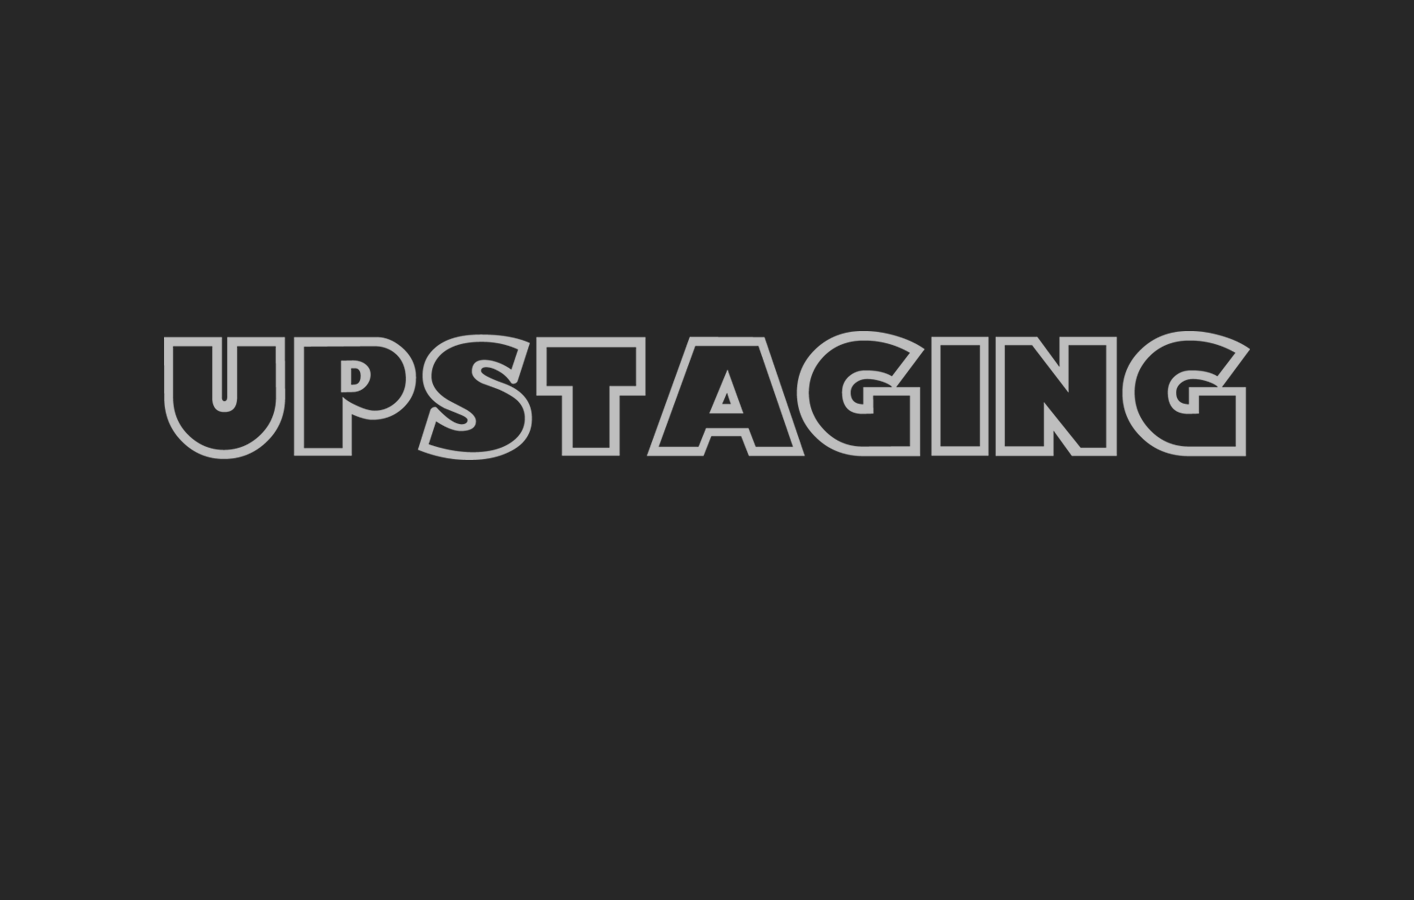 New disguise rental partner confirmed as Upstaging Inc, IL